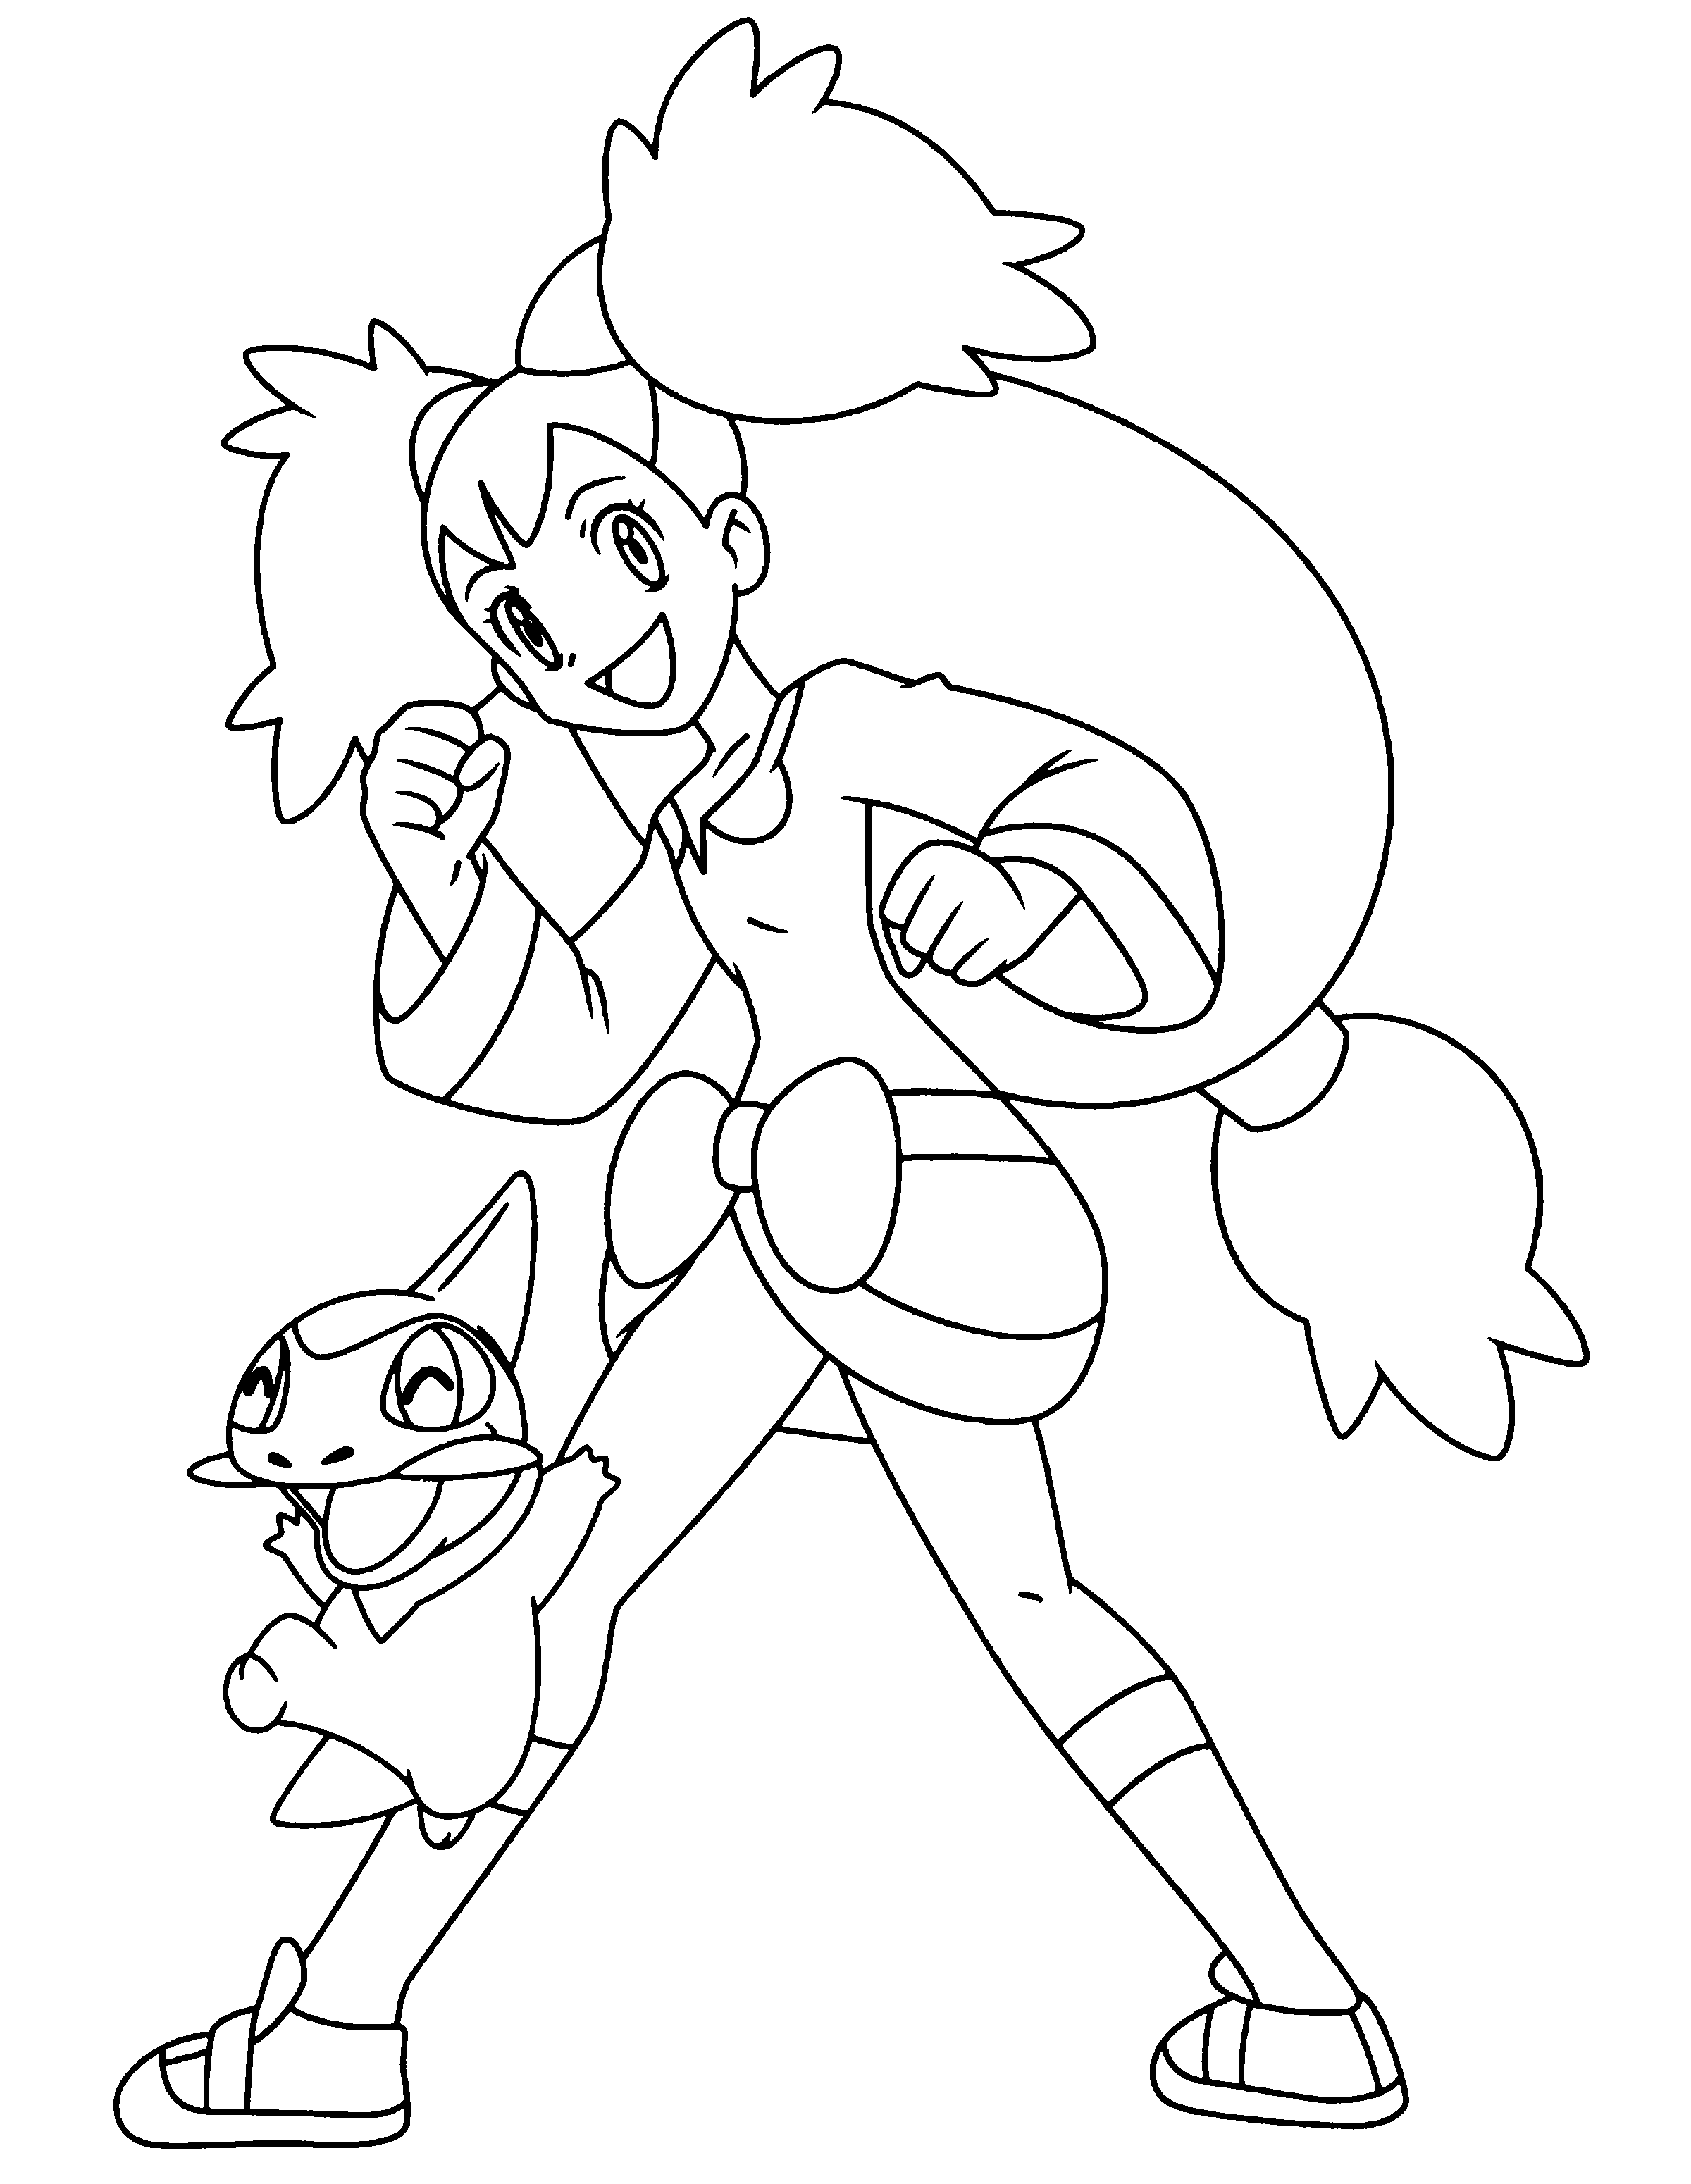 fraxure coloring pages - photo#32